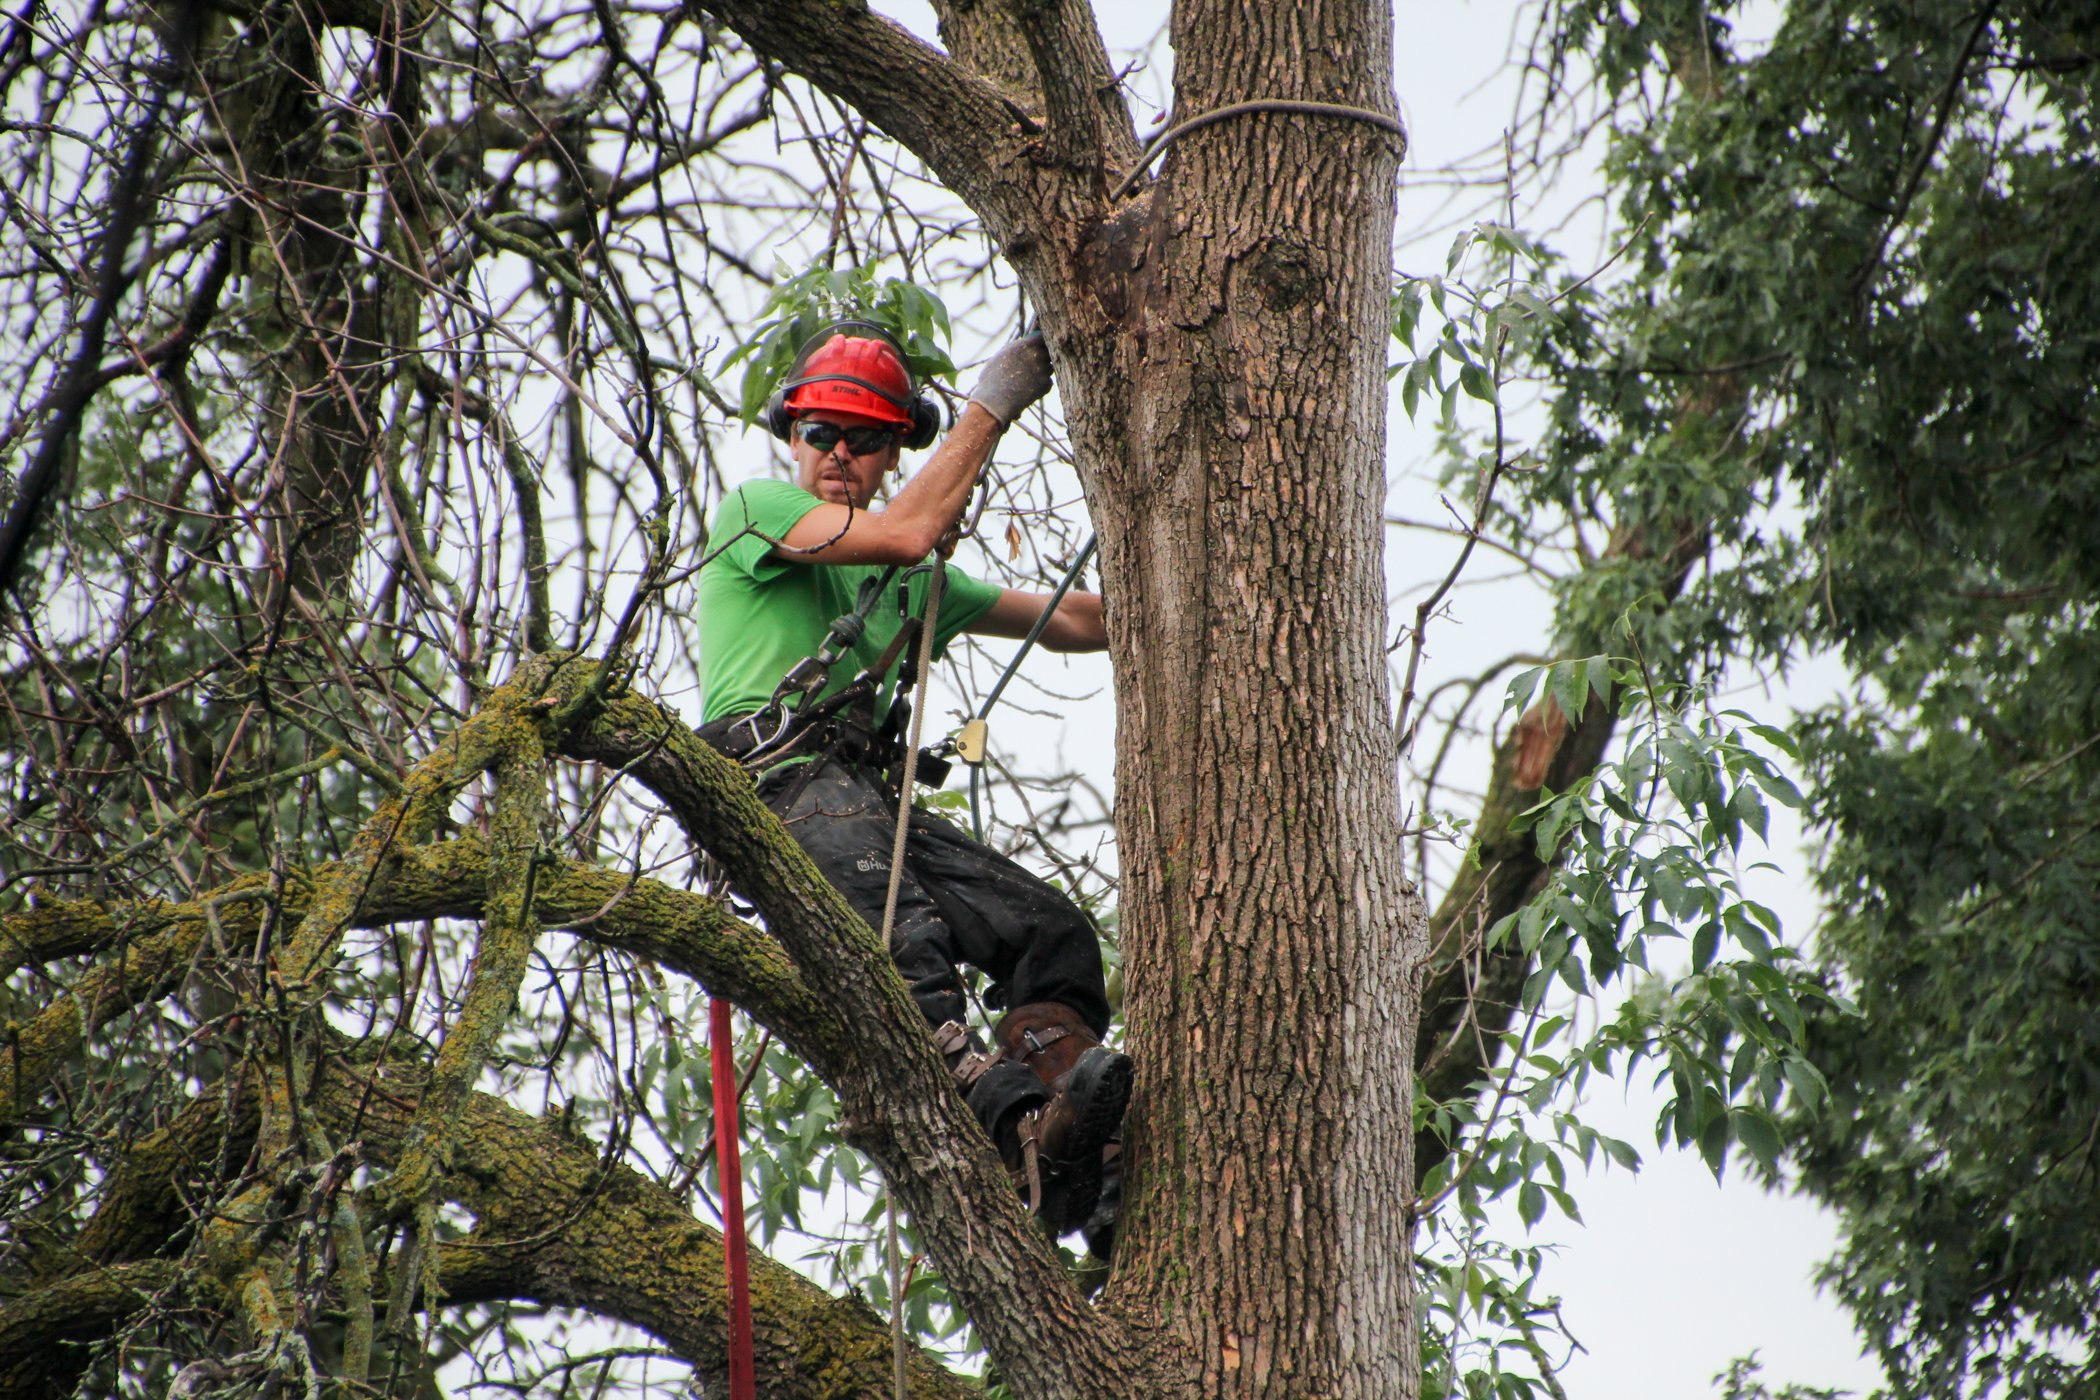 Tree Removal Specialist In A Tree To Remove It